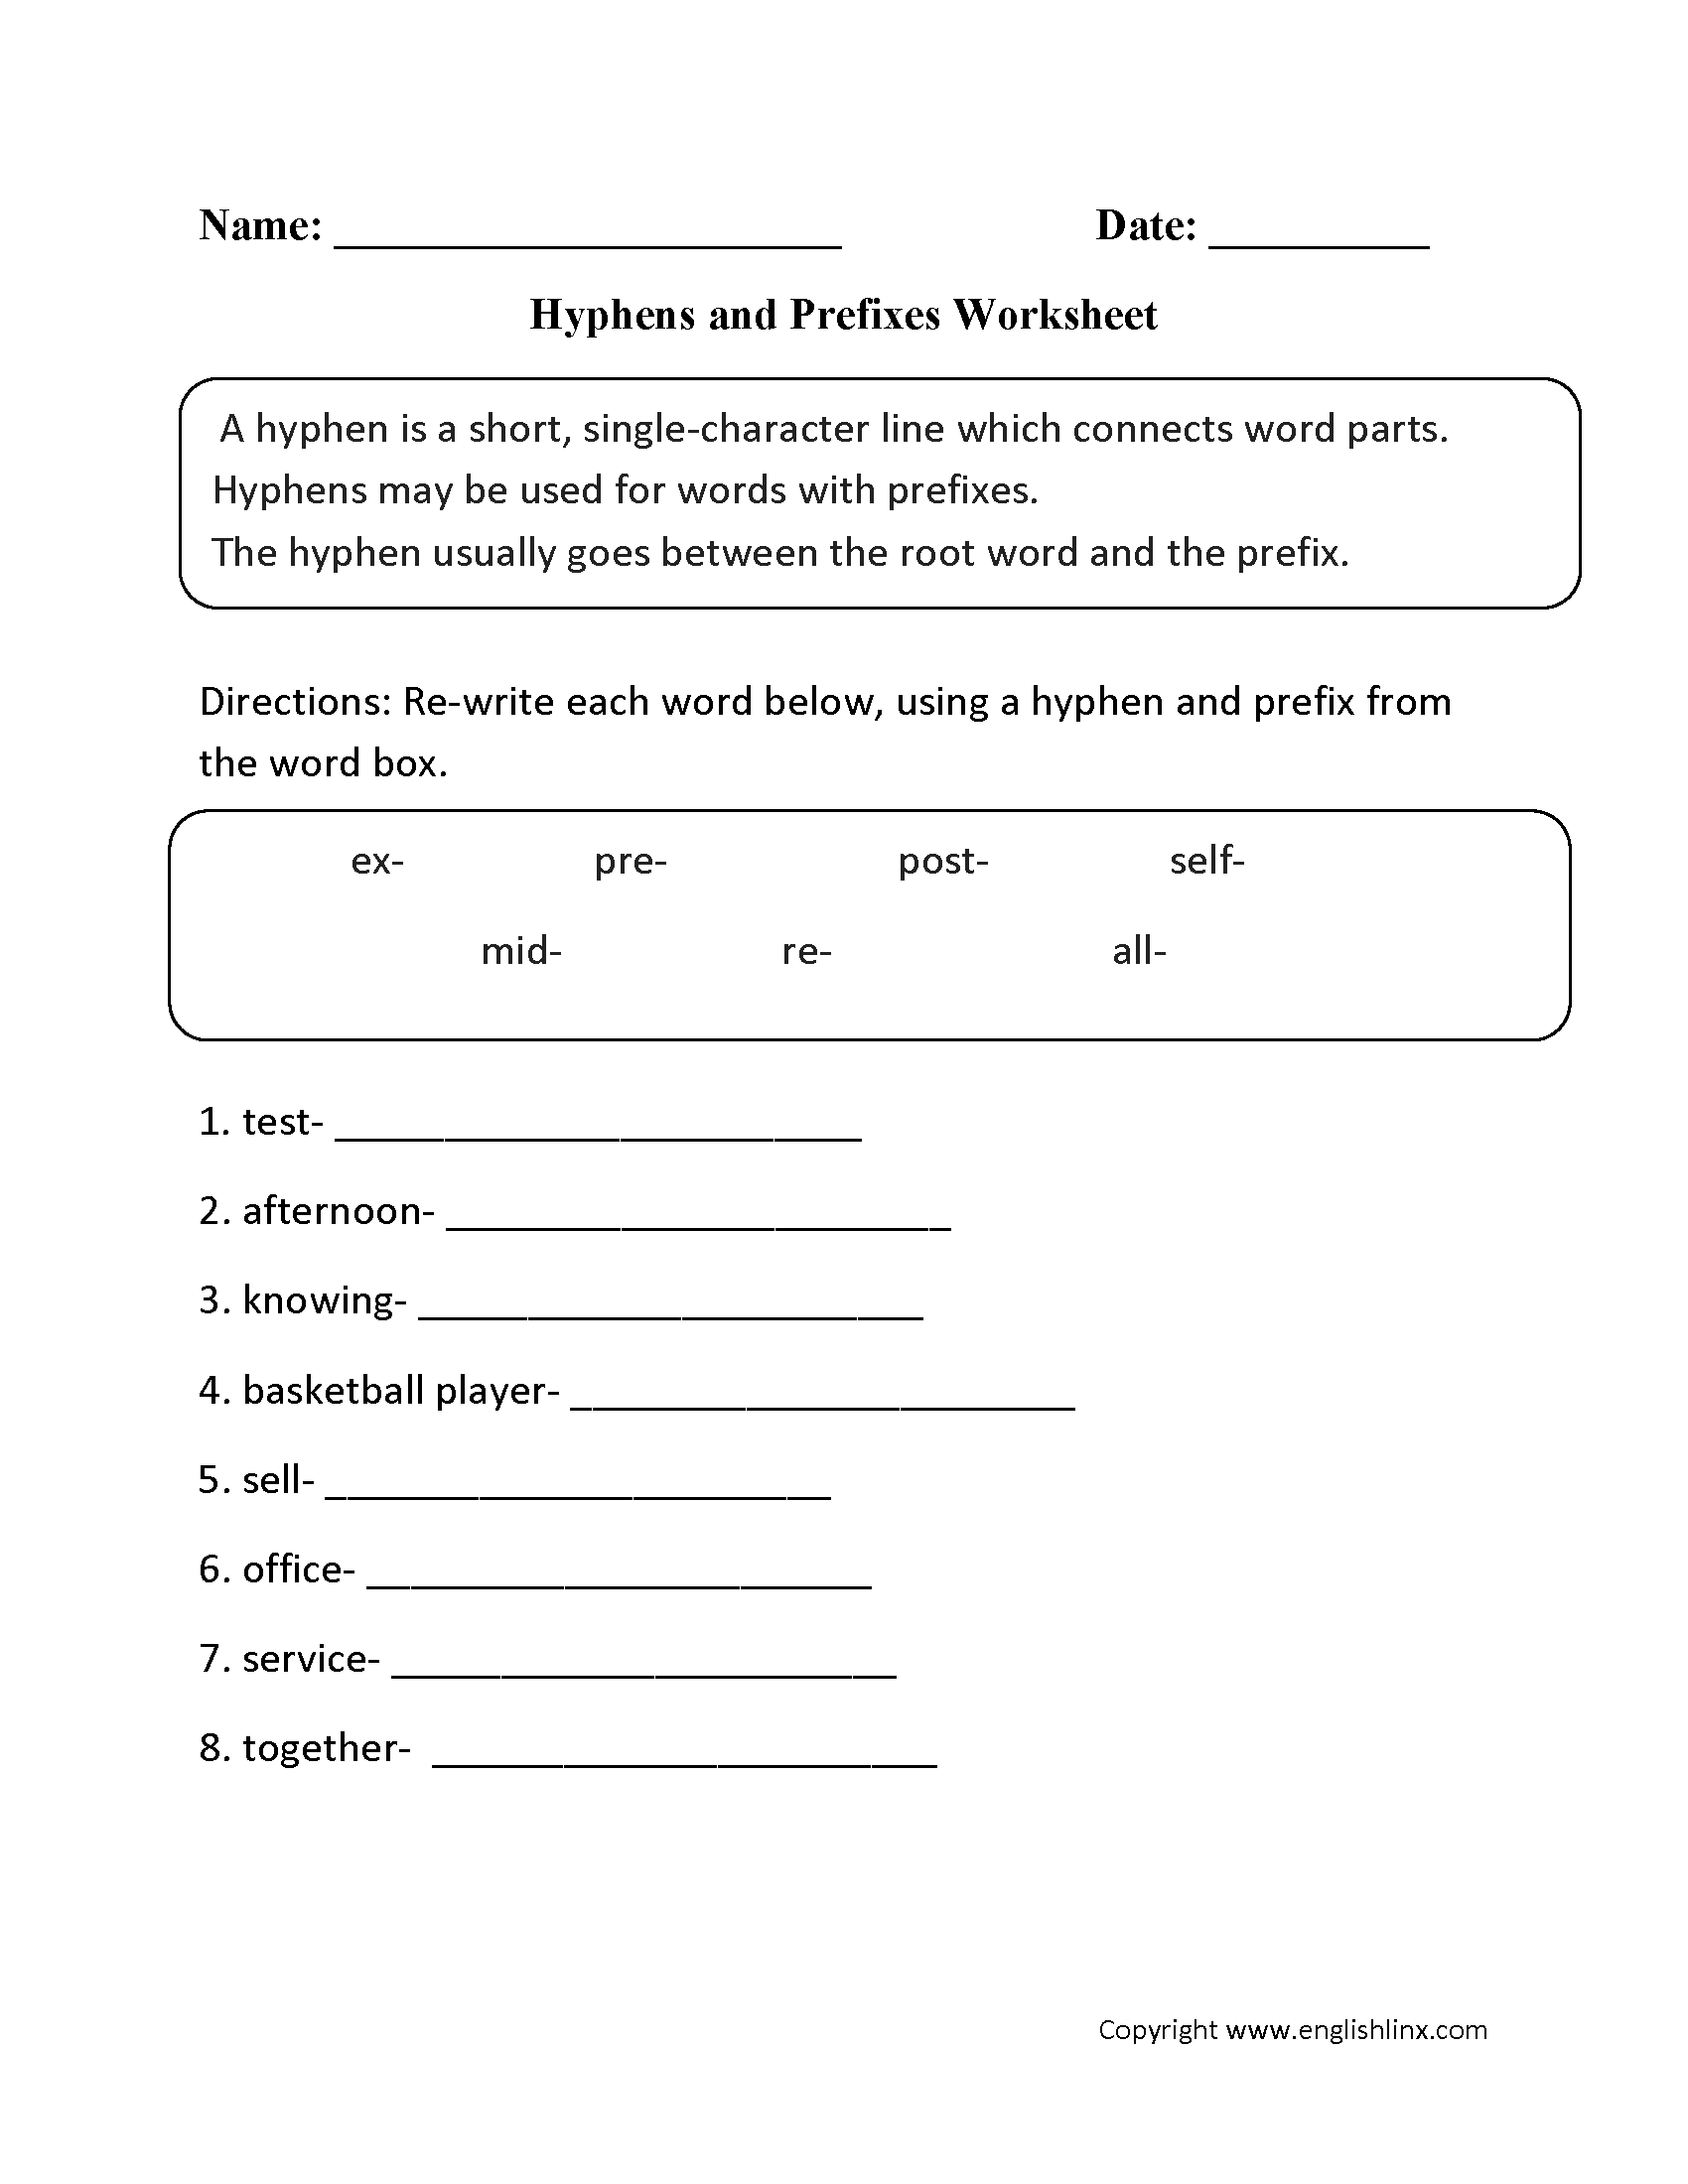 Hyphens and Prefixes Worksheet   Compound words worksheets [ 2200 x 1700 Pixel ]